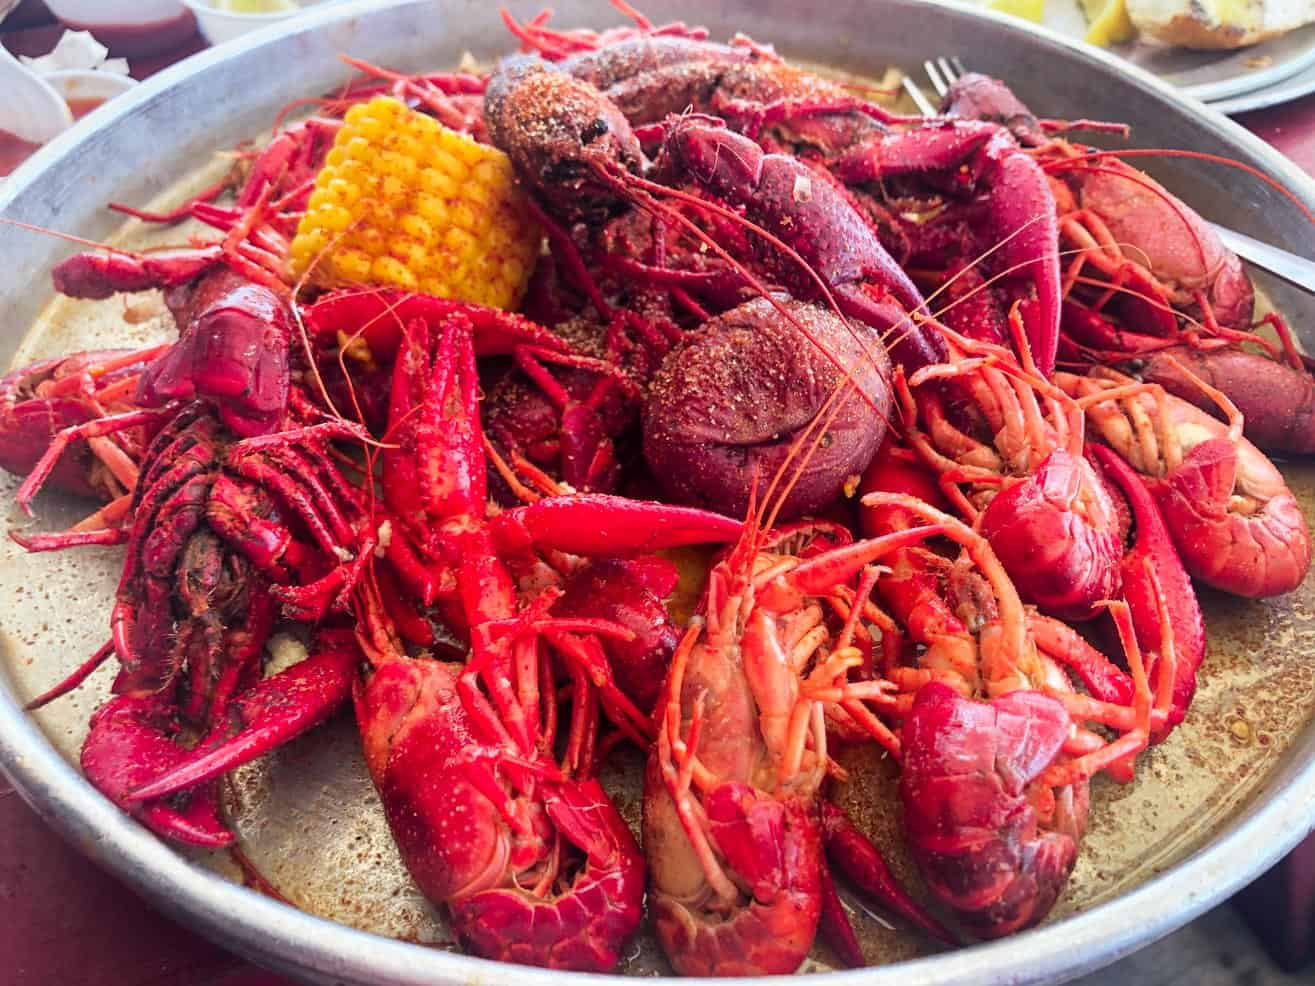 Louisiana Style Boiled Crawfish on a Tray